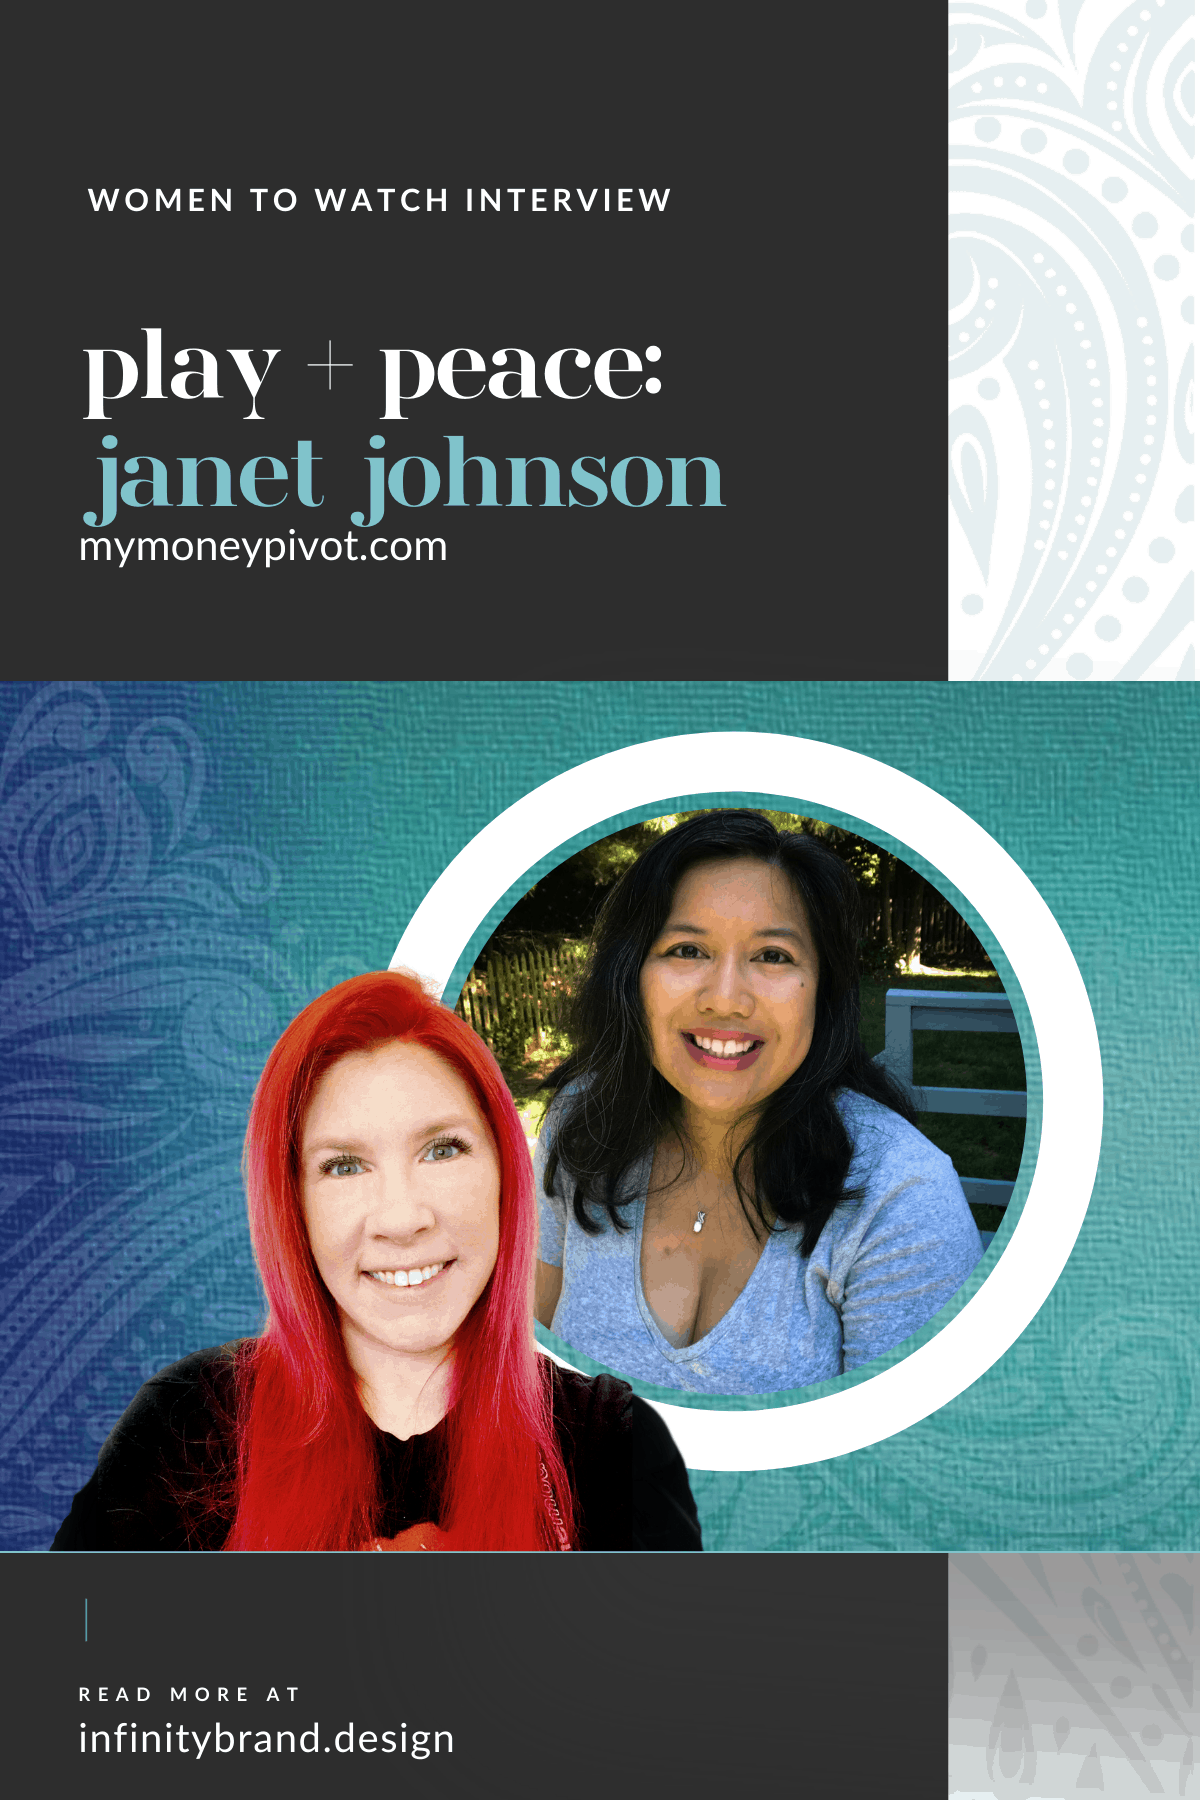 Janet leads her clients through money transformations. We discuss the importance of adding play and peace into your business as well as how that translates to showing up authentically.